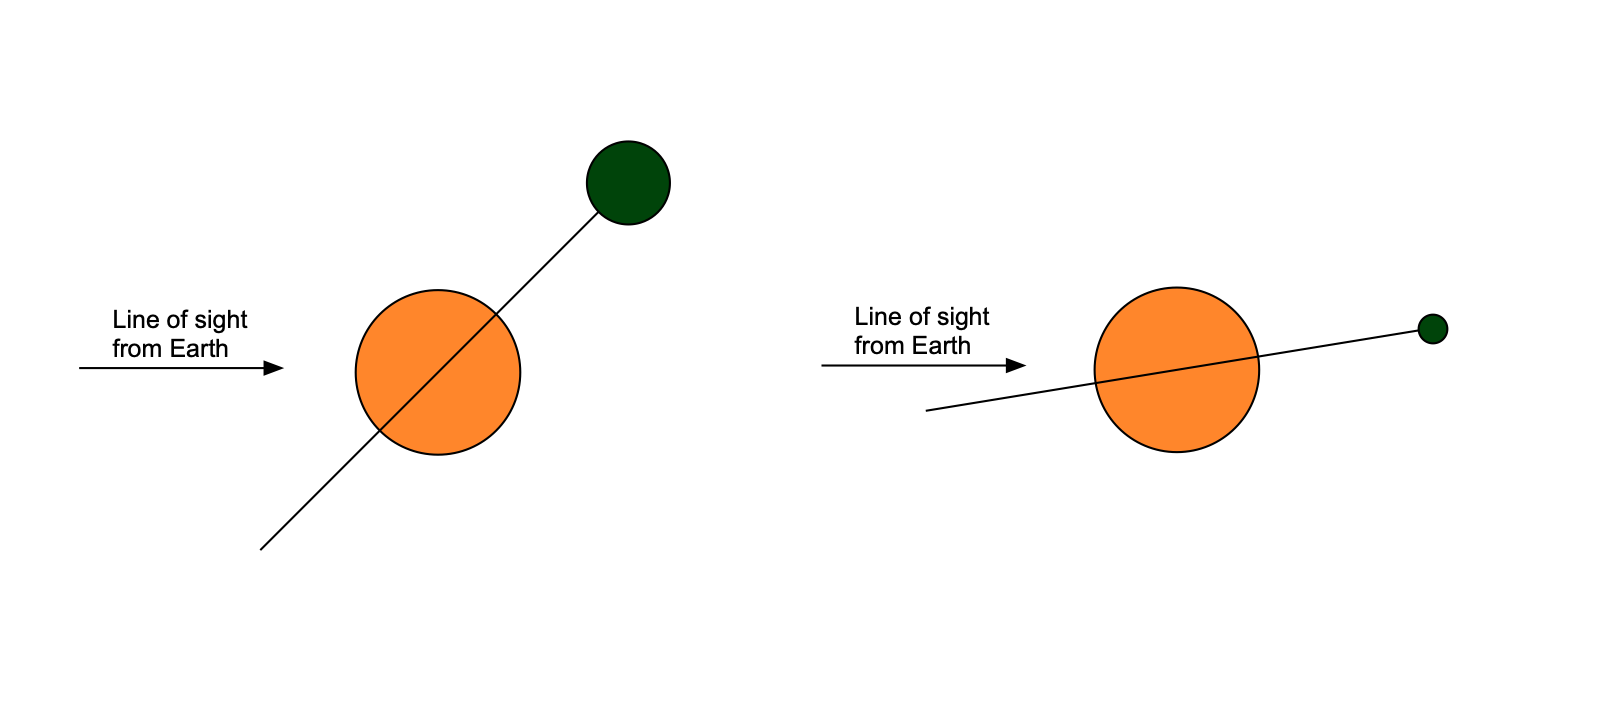 A massive planet orbiting at a steep angle (left) and a small one orbiting at a shallow one will both produce the same motion of a star relative to Earth.